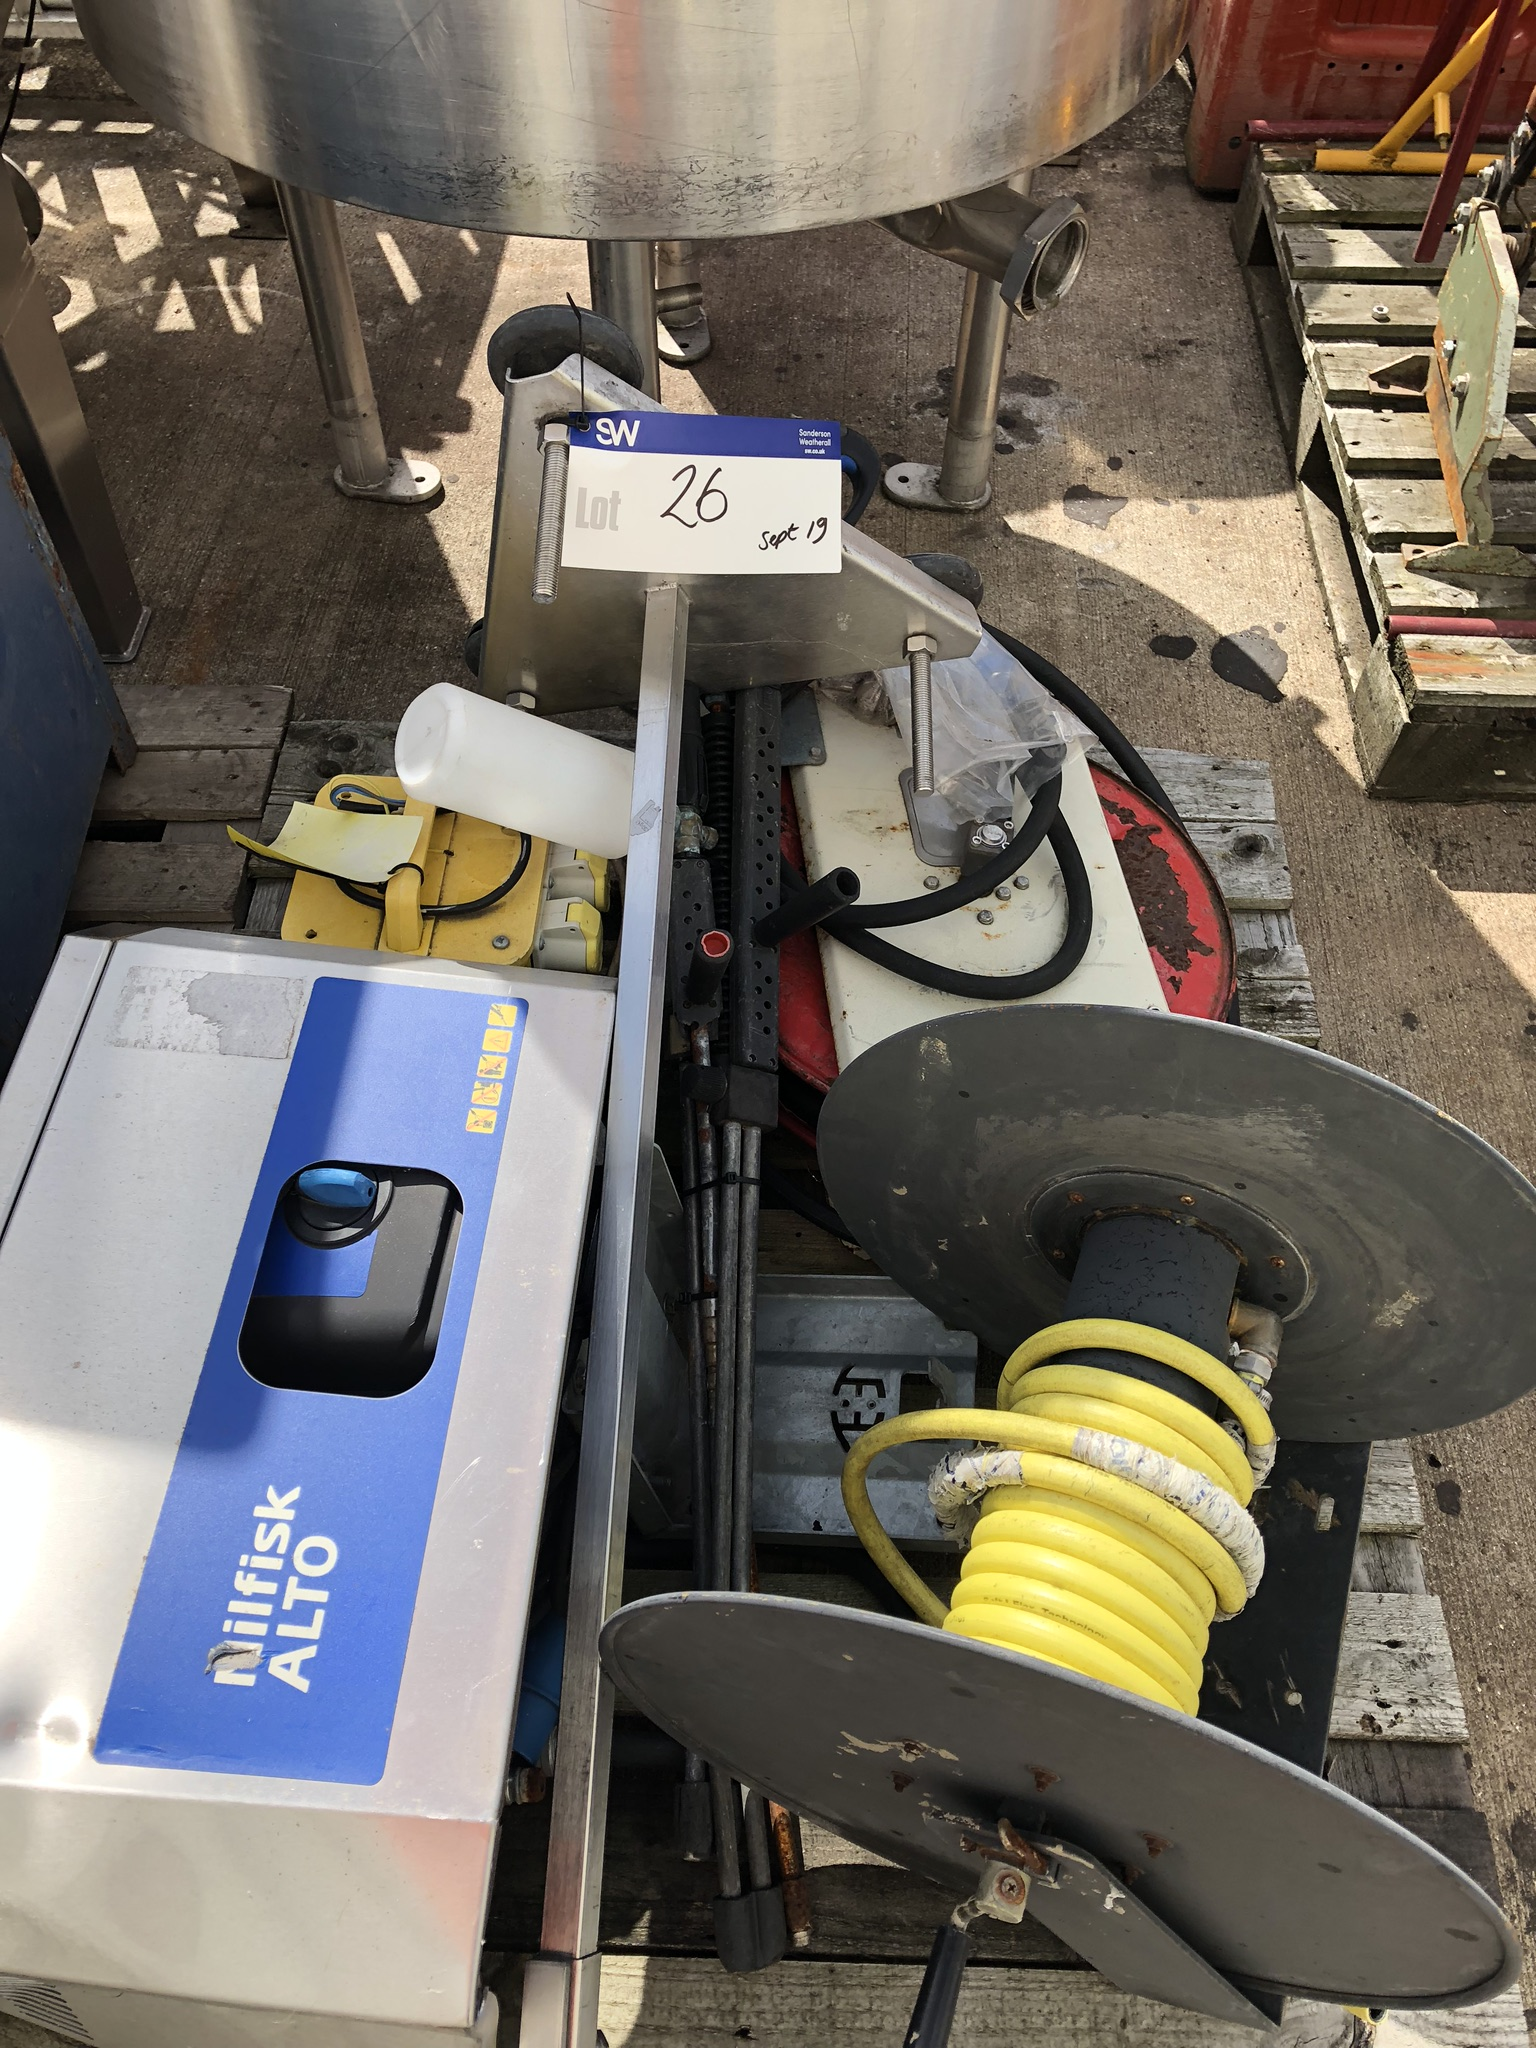 Nilfisk Alto Wall Mounted Pressure Washer, transformer, lift out charge - £10 - Image 2 of 2